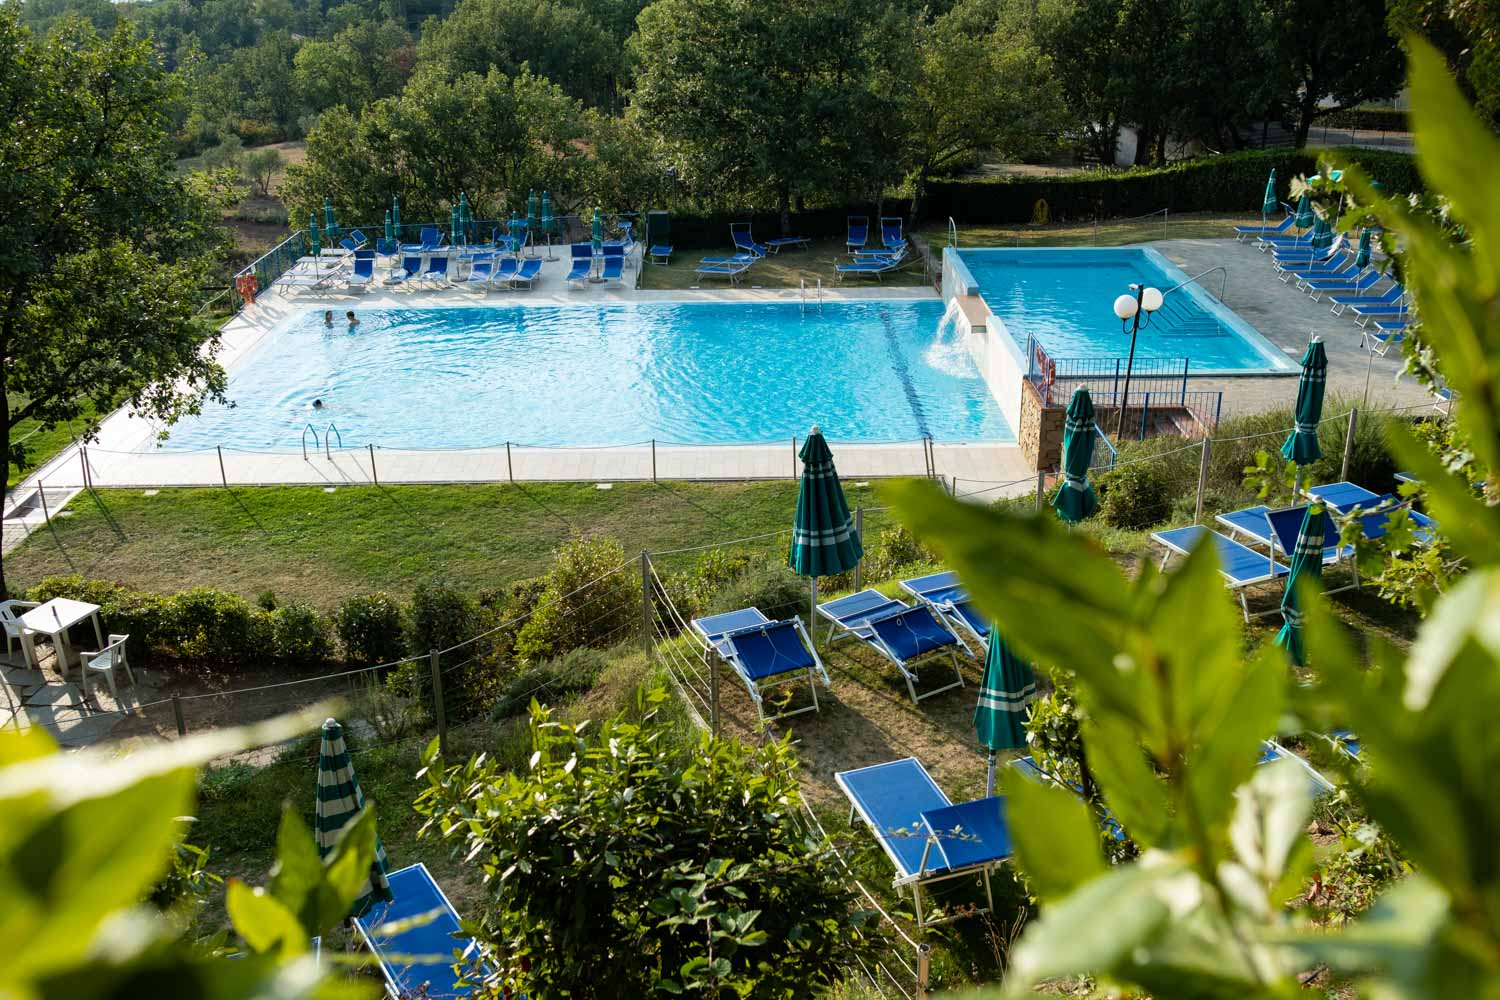 Camping platz mit pool in der toskana camping barco reale - Campeggio con piscina ...